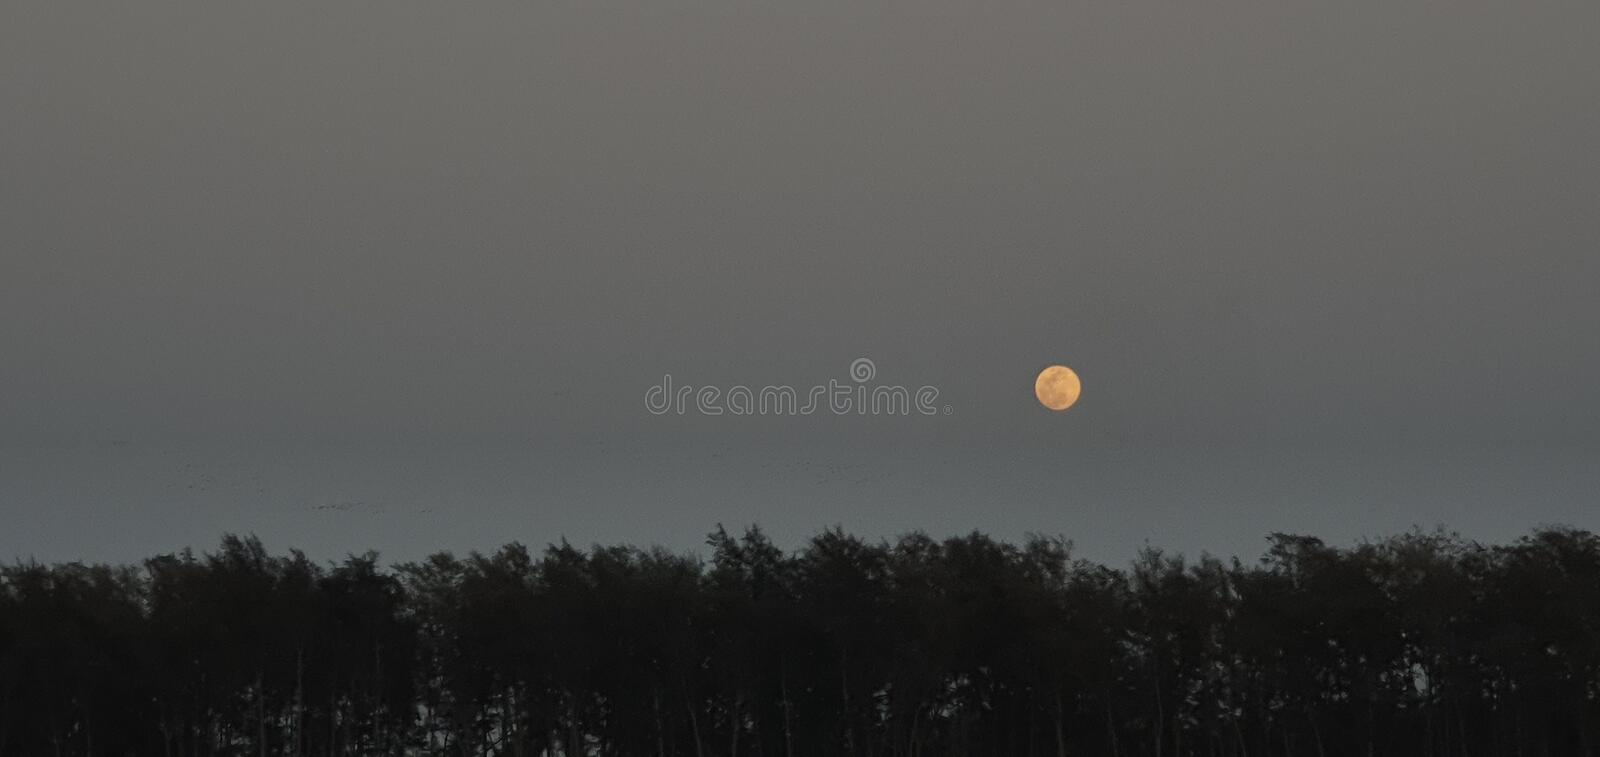 Moon. Jampore, photography, sunset, outdoors, landscape, scenery, sunlight, water, nopeople, dusk, sky, horizon, nature, cloud, blue, orange, brown, tranquil royalty free stock image